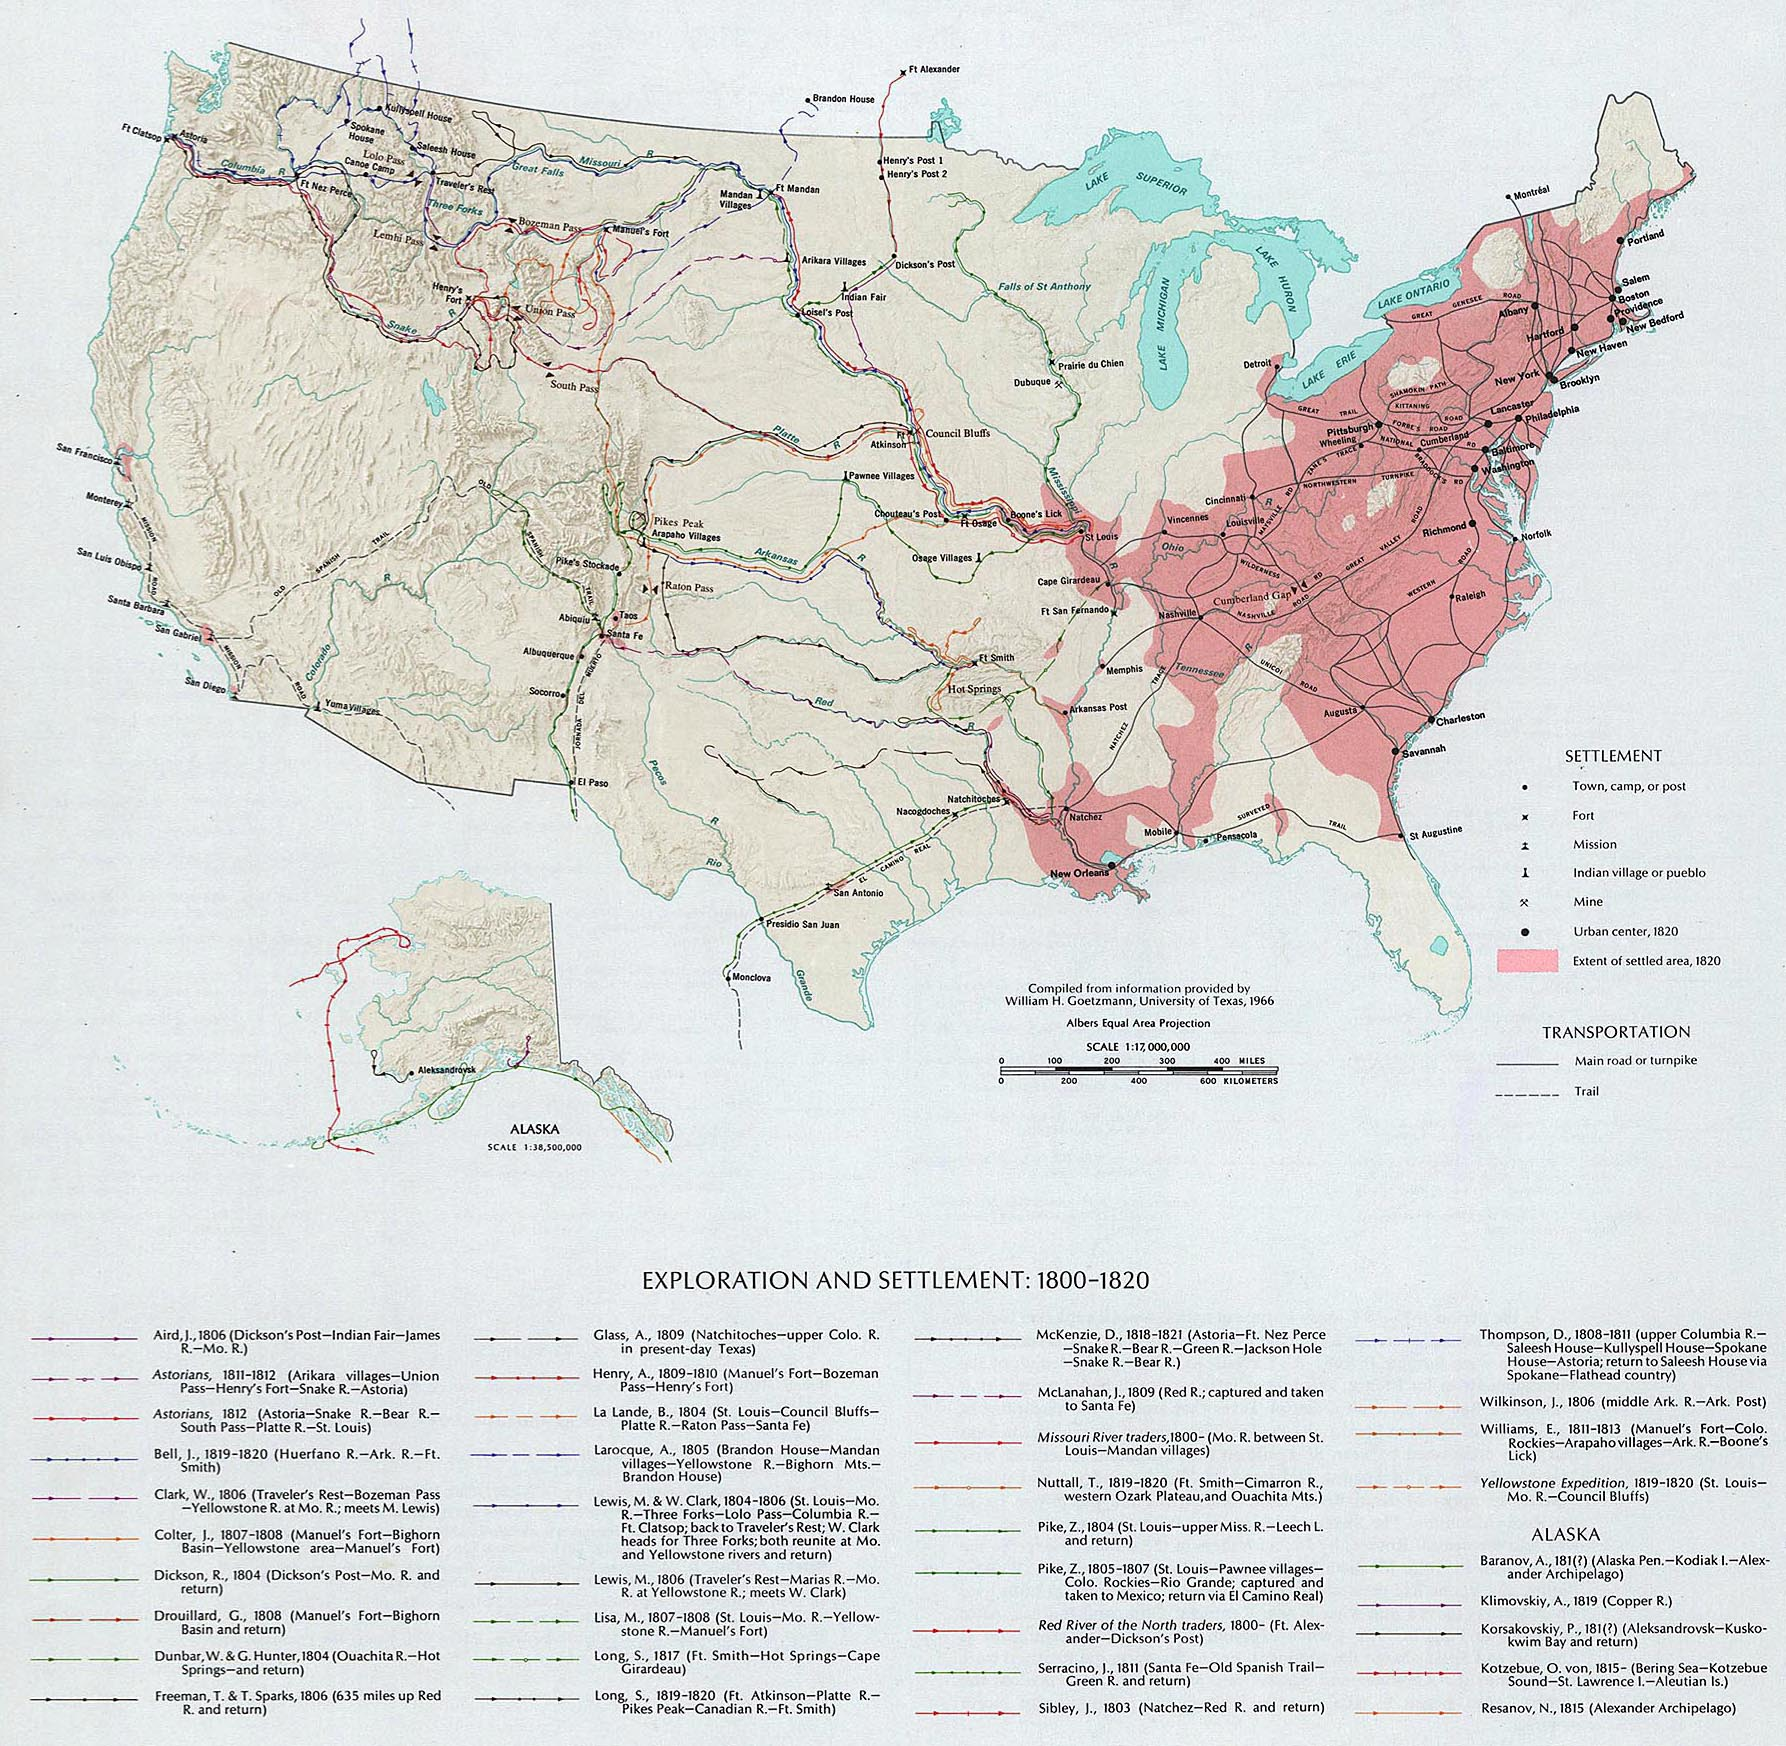 Map of the United States - Exploration and Settlement 1800-1820